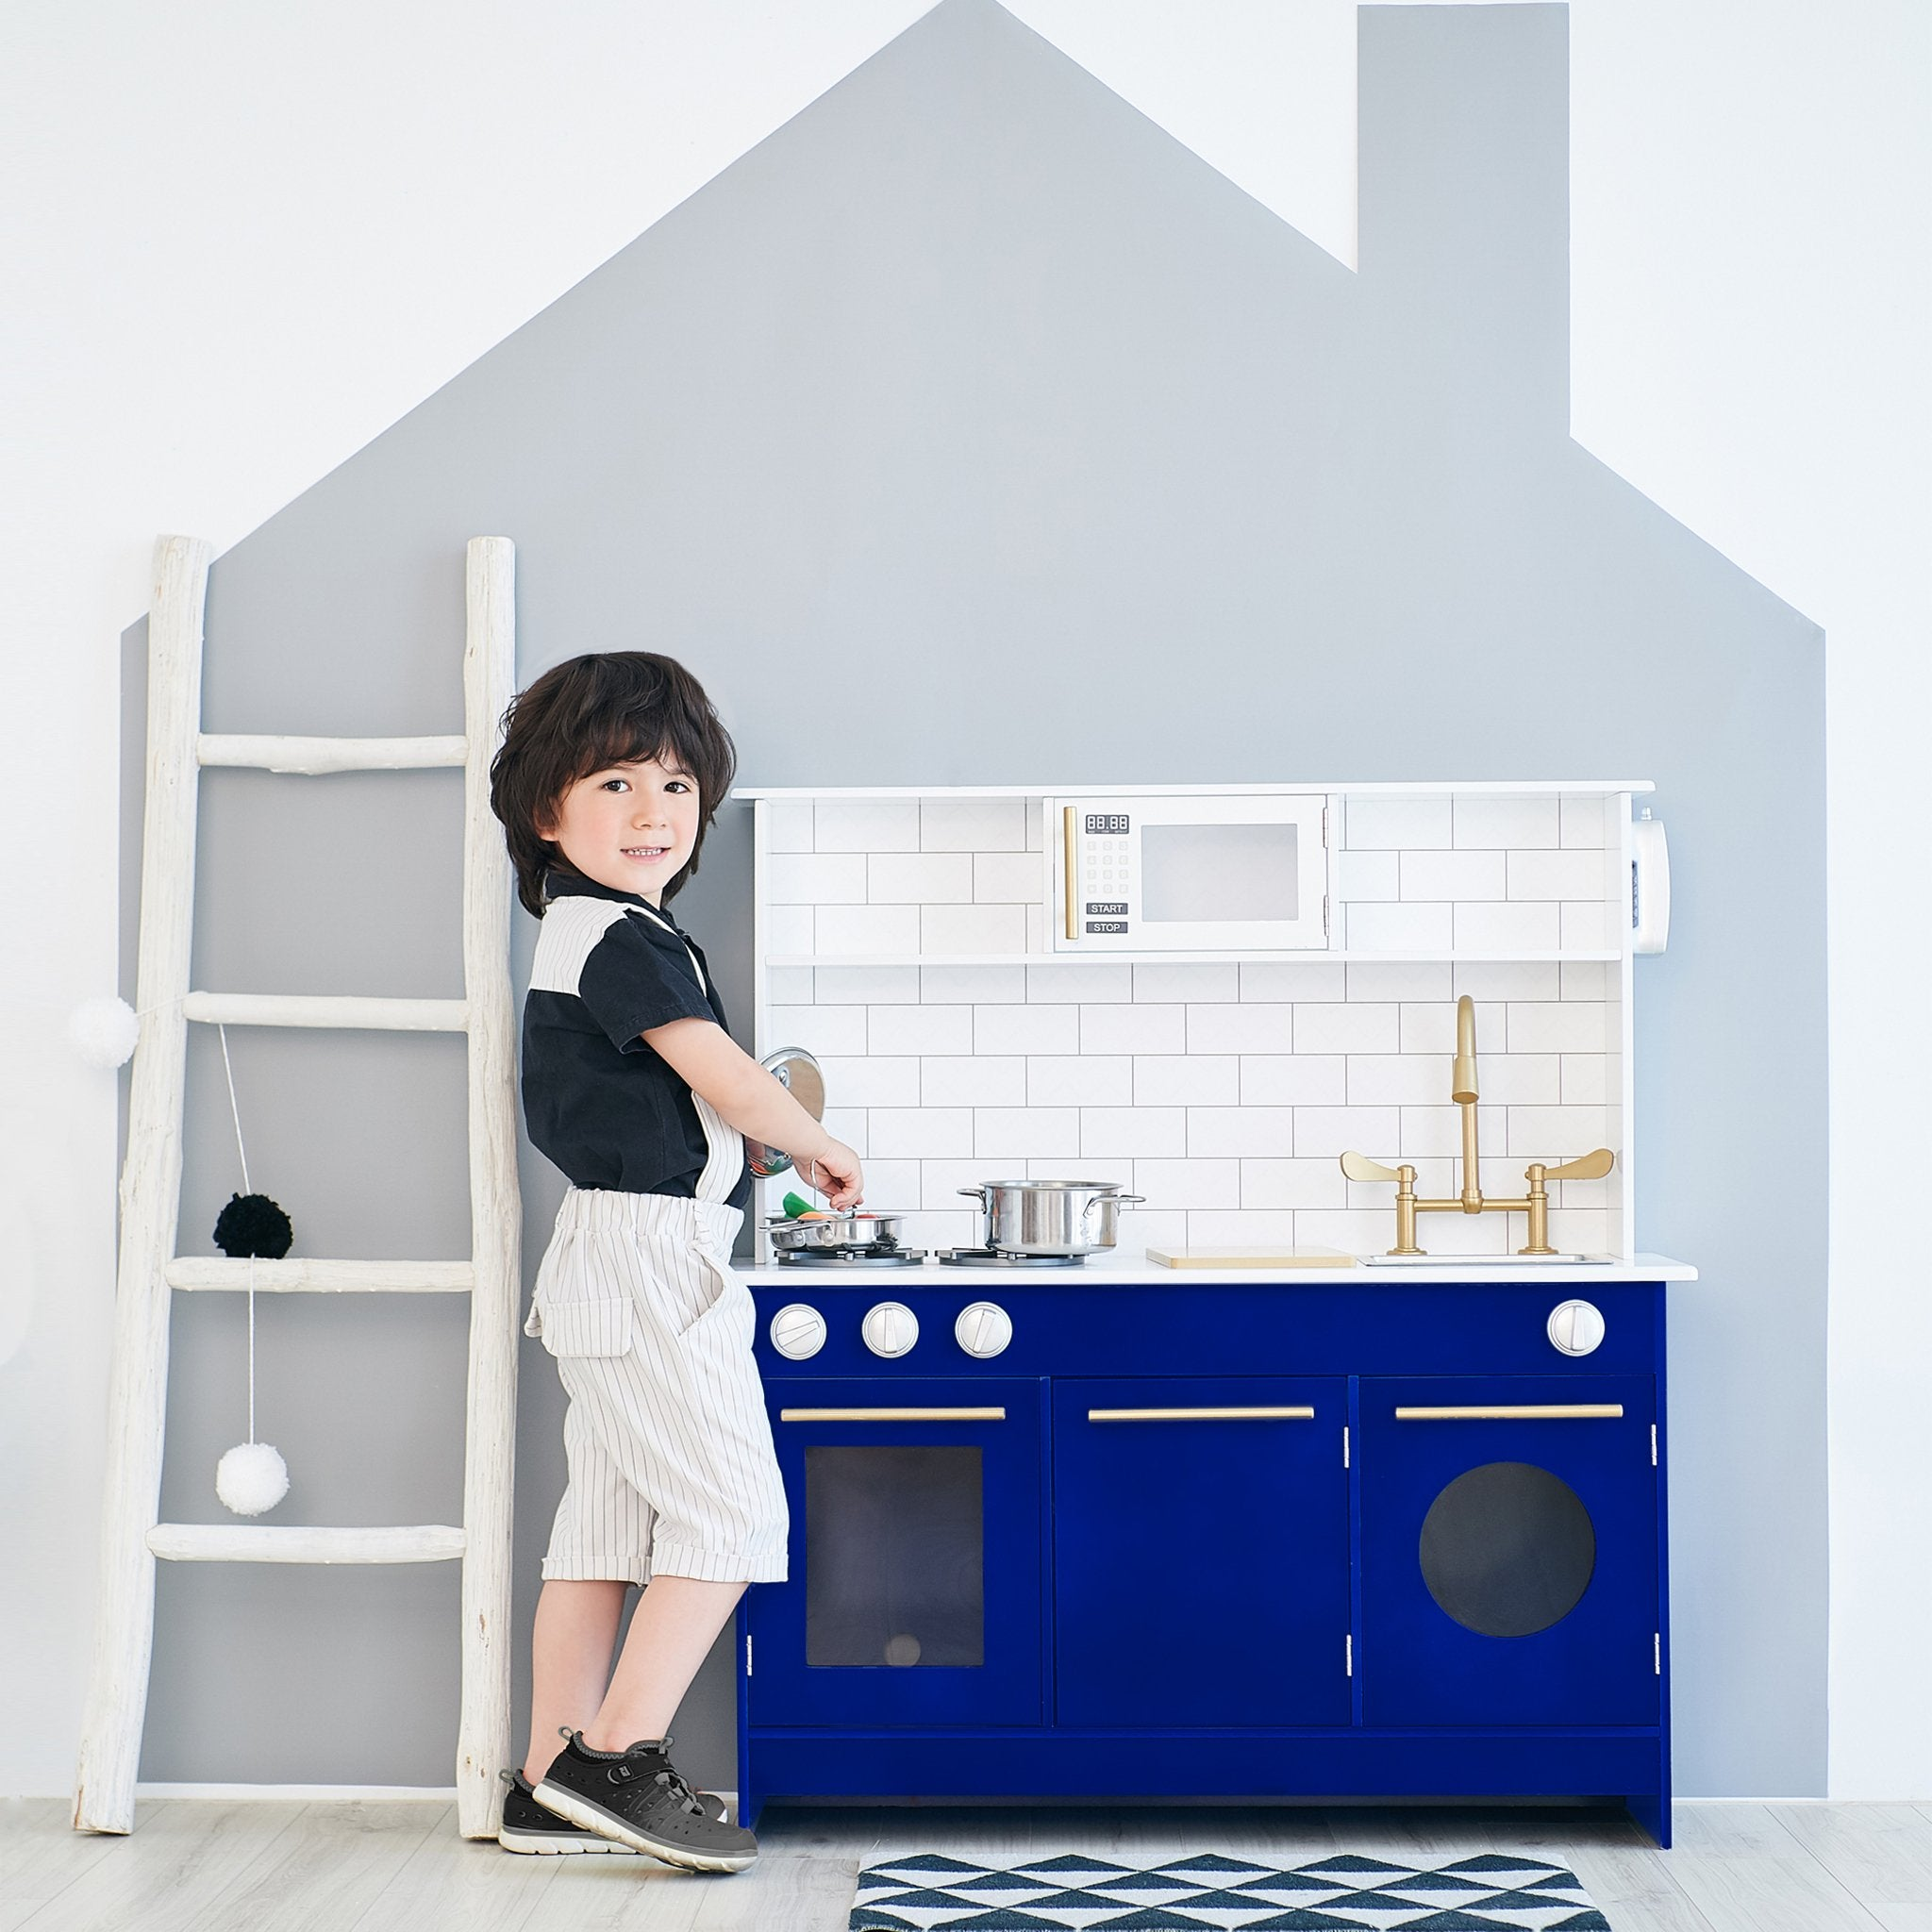 Load image into Gallery viewer, Little Chef Berlin Modern Play Kitchen - White / Blue | Teamson Kids - Costume + Pretend Play - Play Kitchen + Food